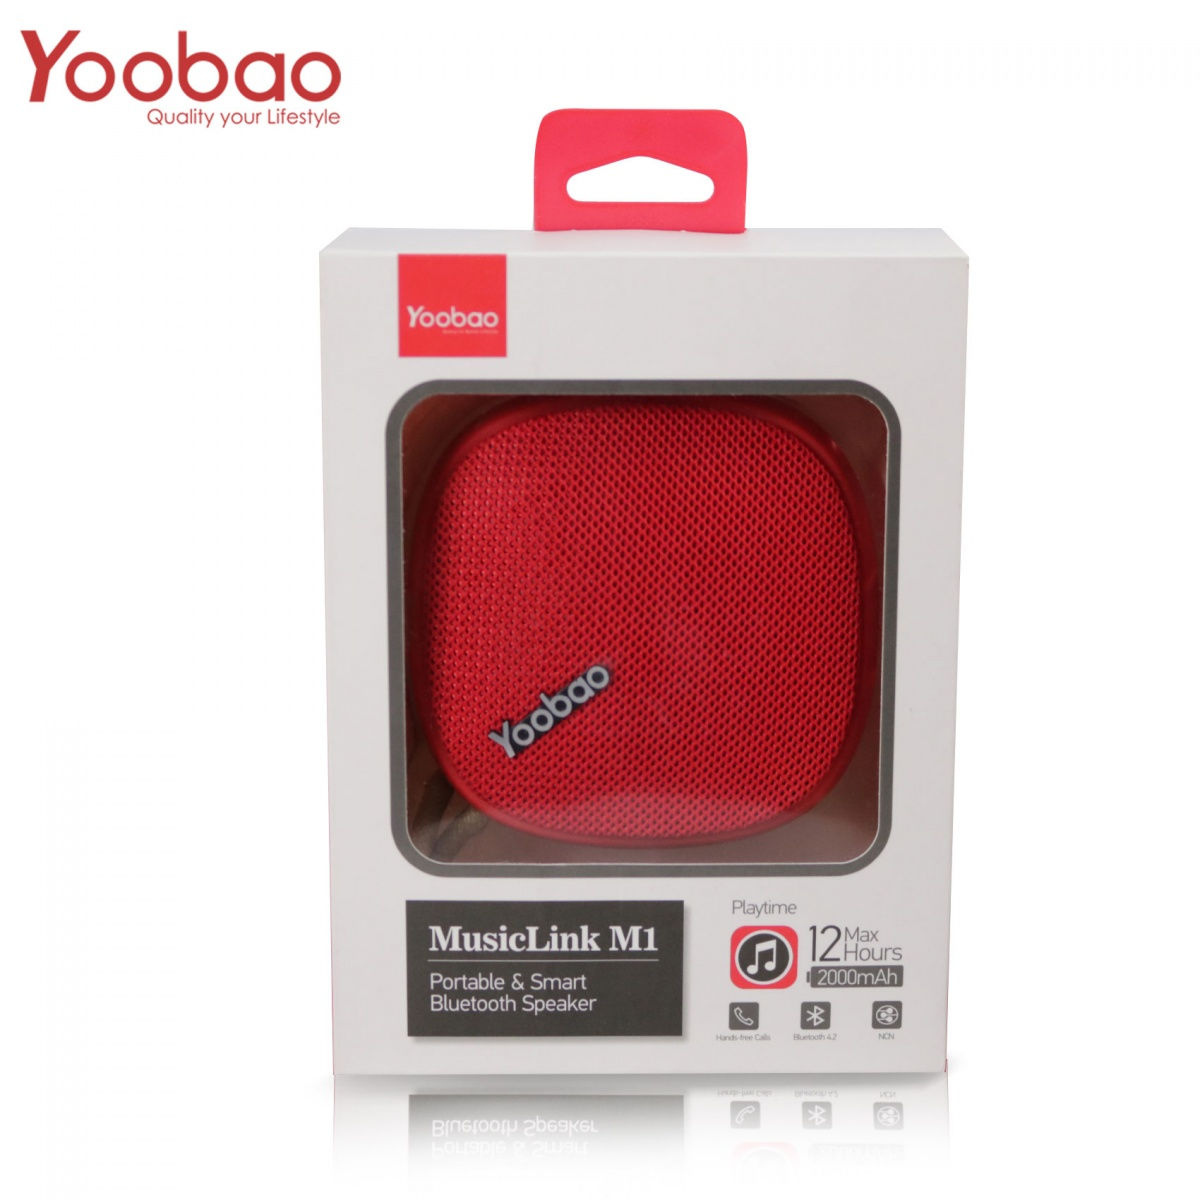 Yoobao M1 Portable Bluetooth Speaker – Red 6